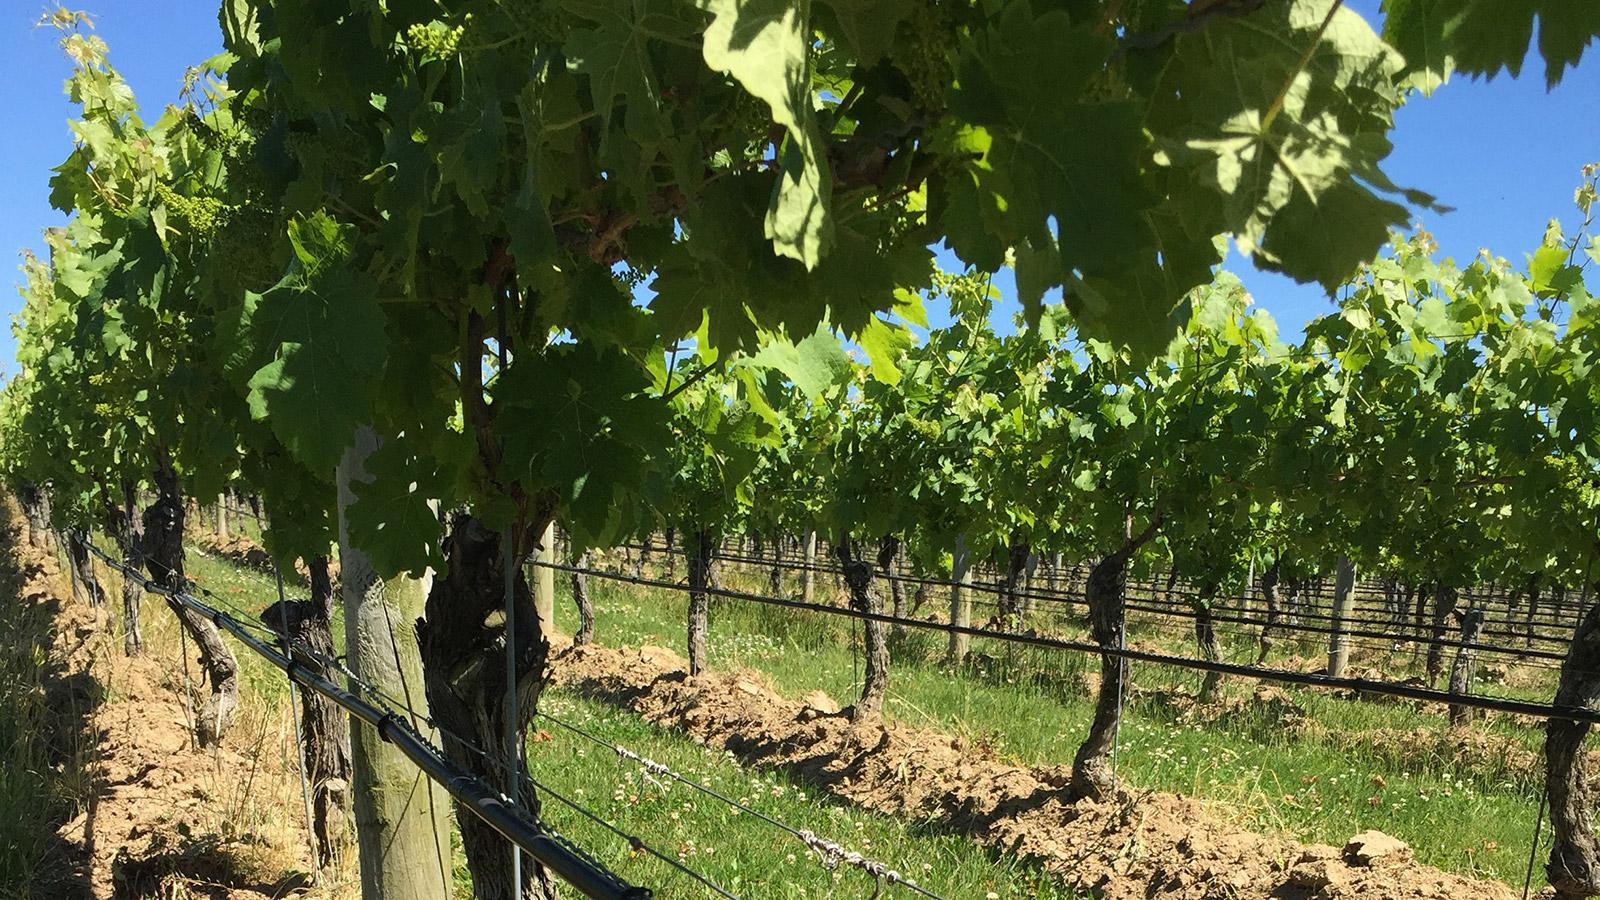 Limiting yields is an important part of the viticultural philosophy at Clovis Point.